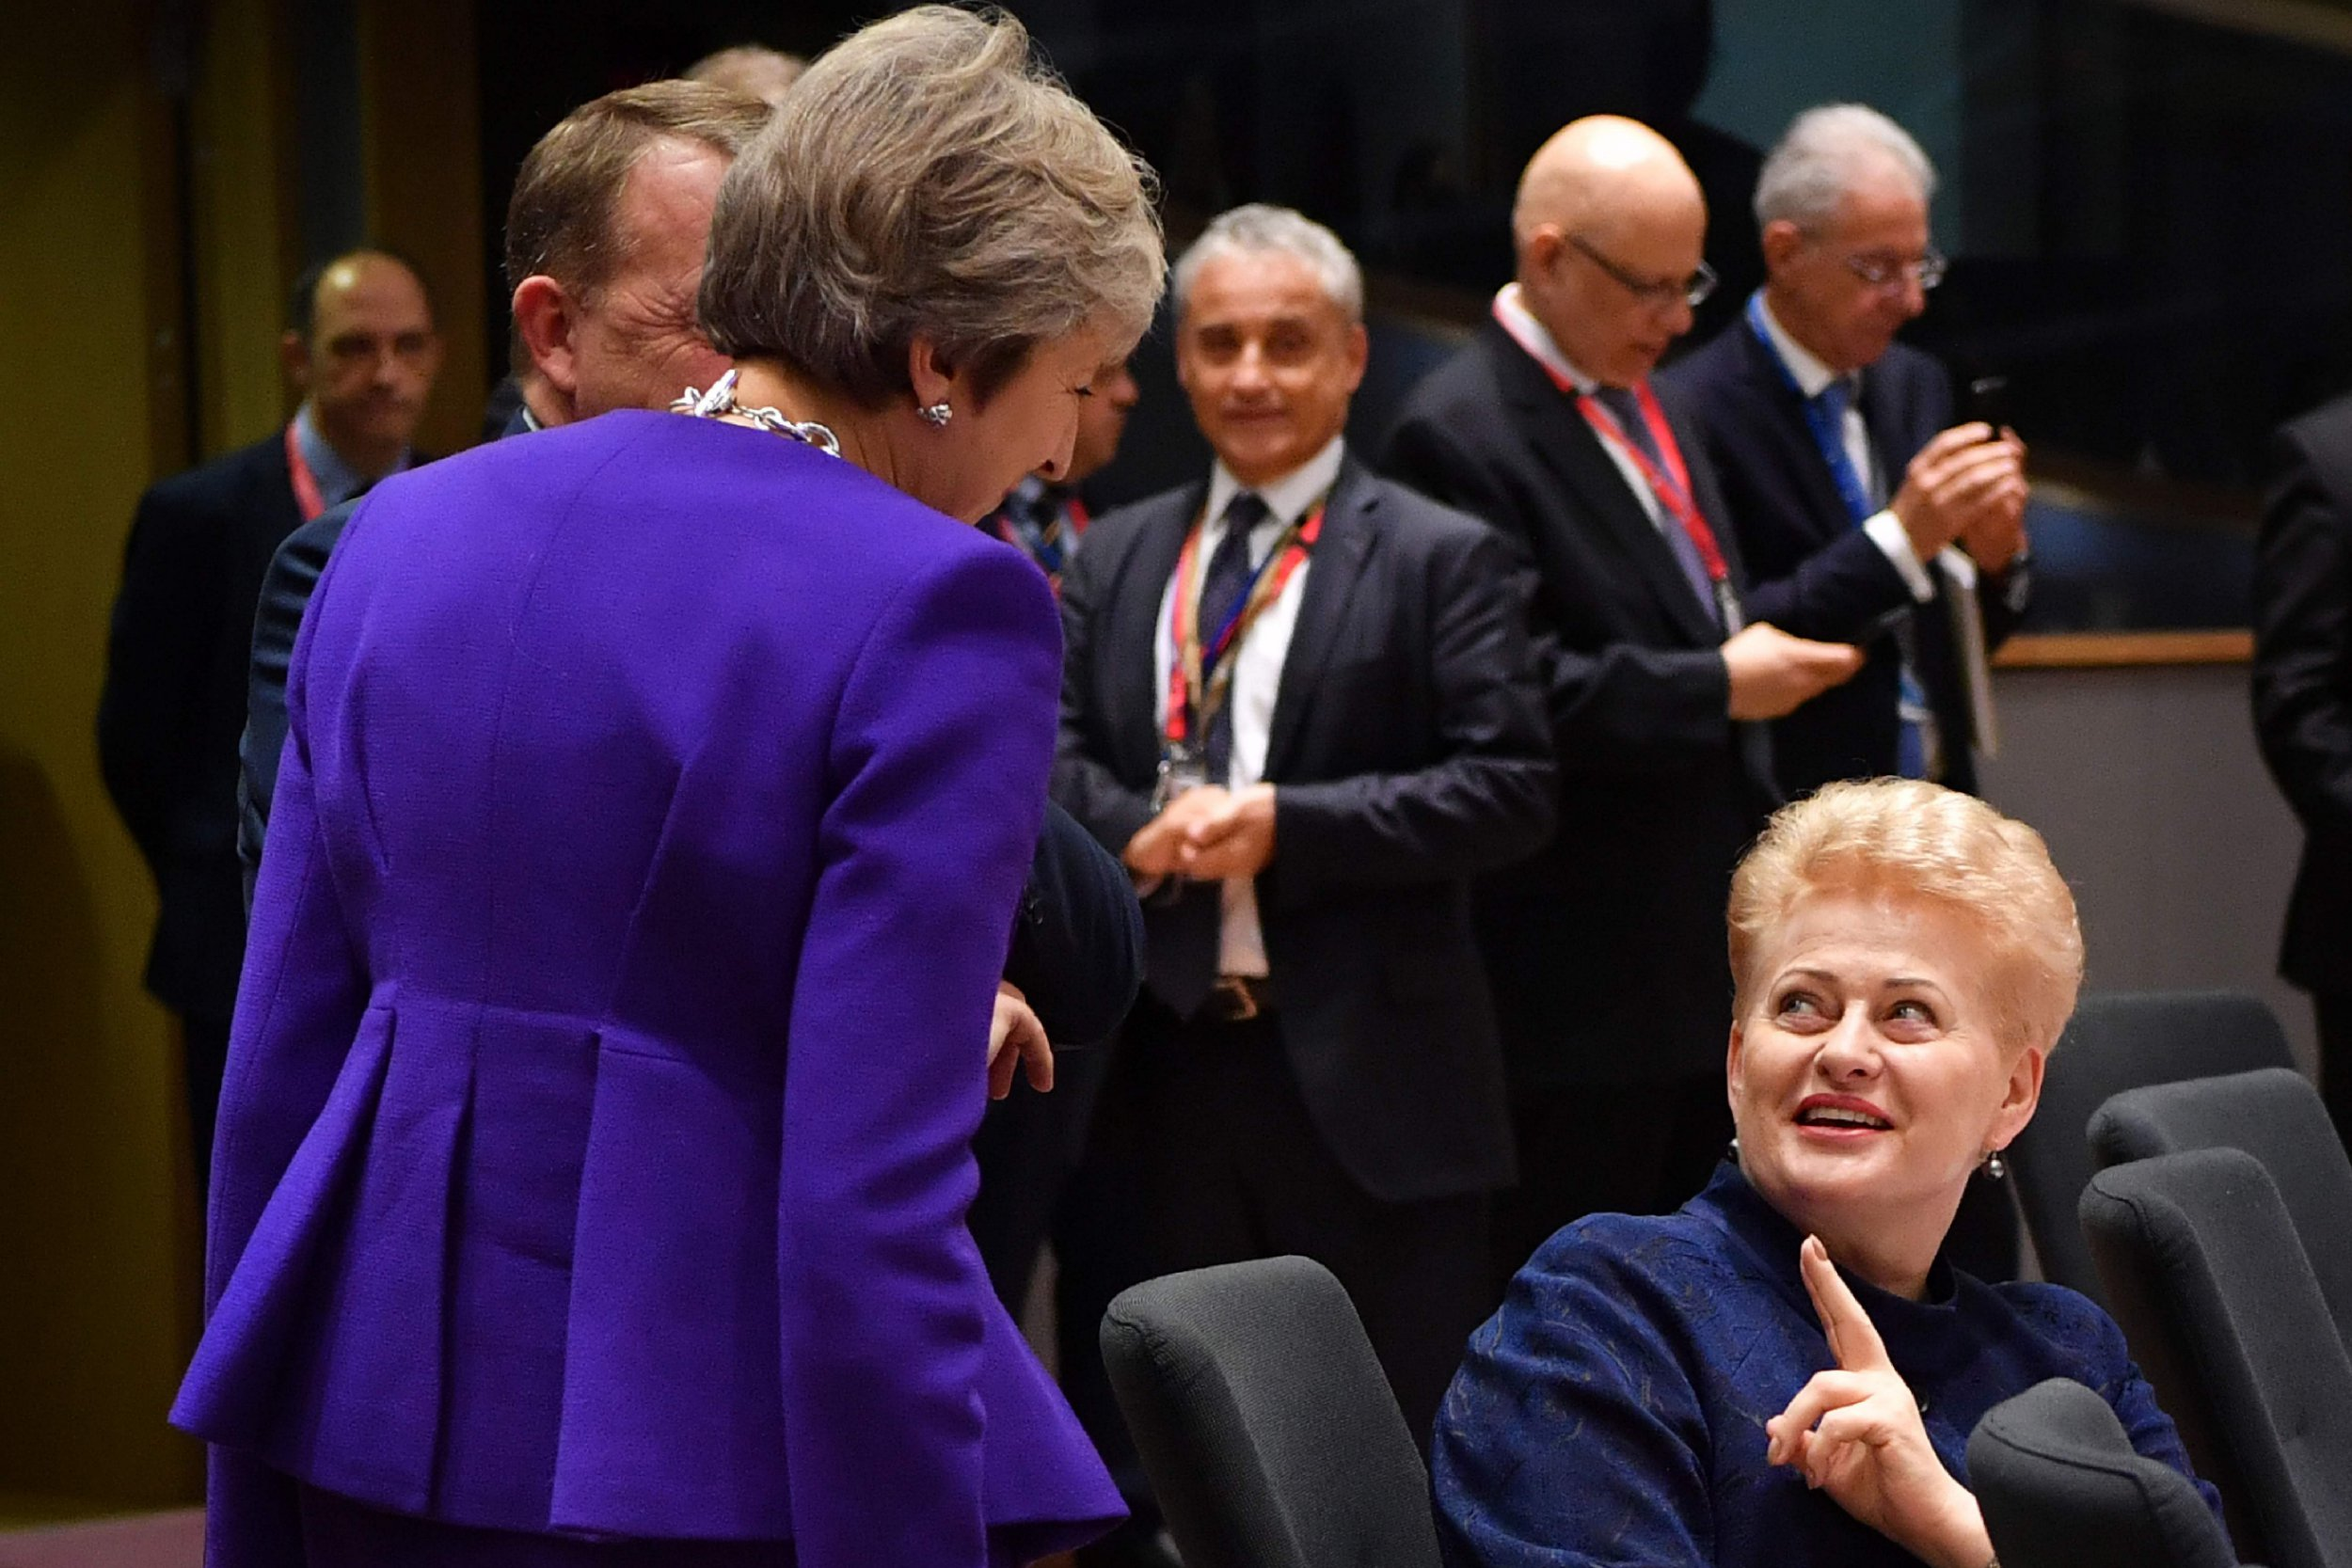 Lithuania's President Dalia Grybauskaite (R) gestures as she speaks to Britain Prime Minister Theresa May (L) during the second day of a European Union leaders summit at the European Council in Brussels on October 18, 2018. - European Union leaders meet for a summit focused on migration and internal security, after reviewing the state of the Brexit negotiations with Britain. (Photo by BEN STANSALL / AFP)BEN STANSALL/AFP/Getty Images